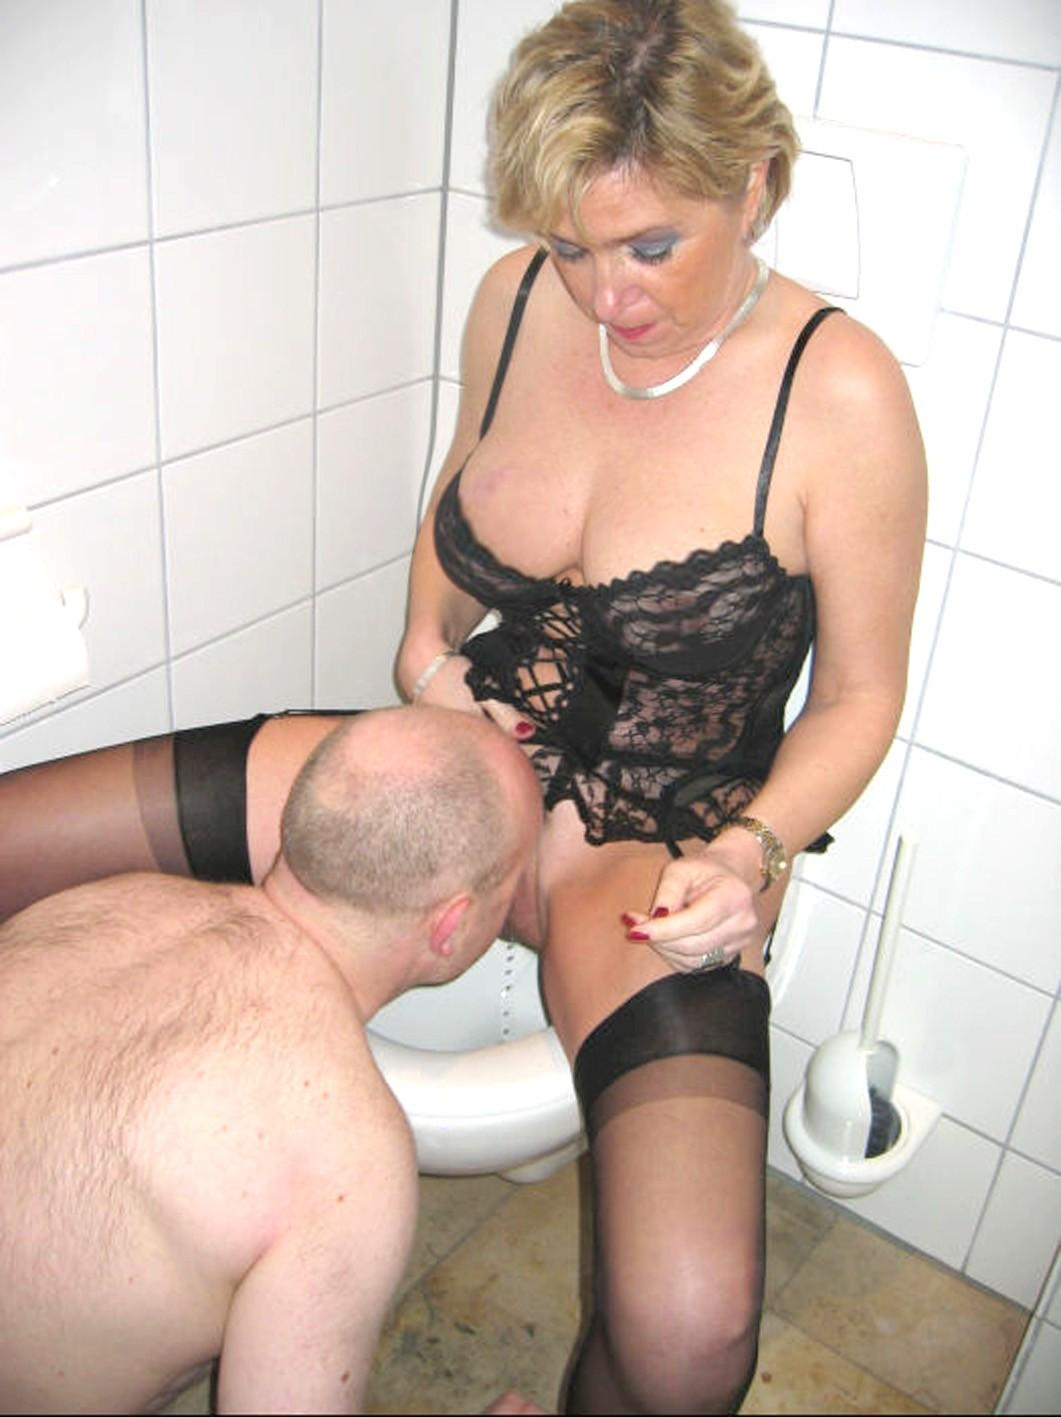 2 horny wives rubber a guy with 2 cocks 5